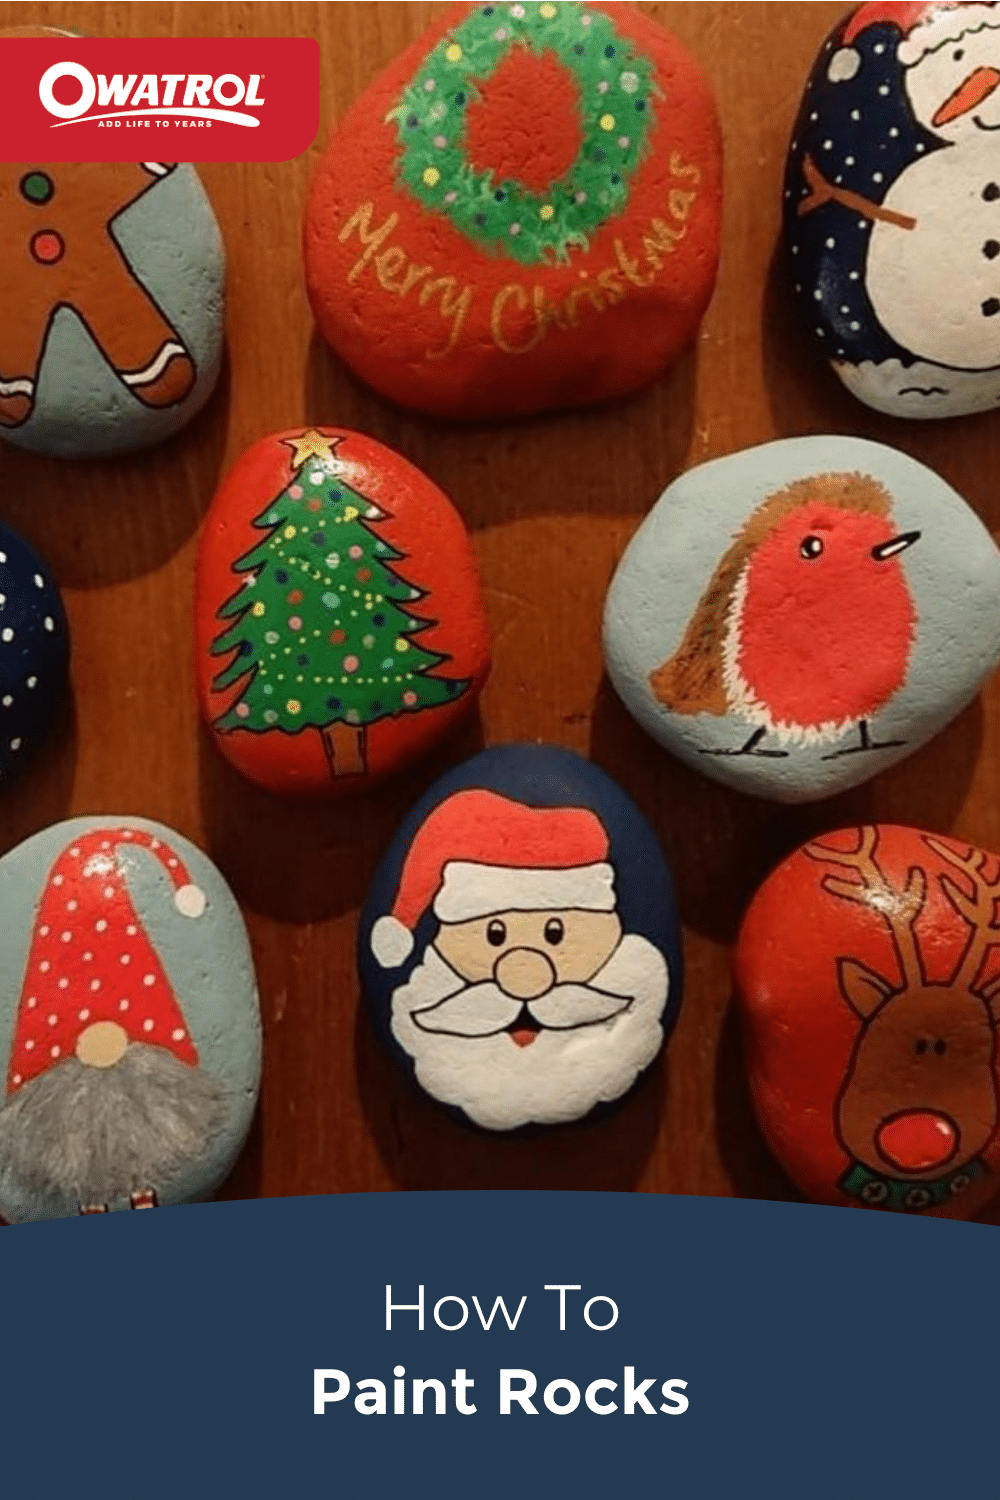 How to paint rocks - Pinterest